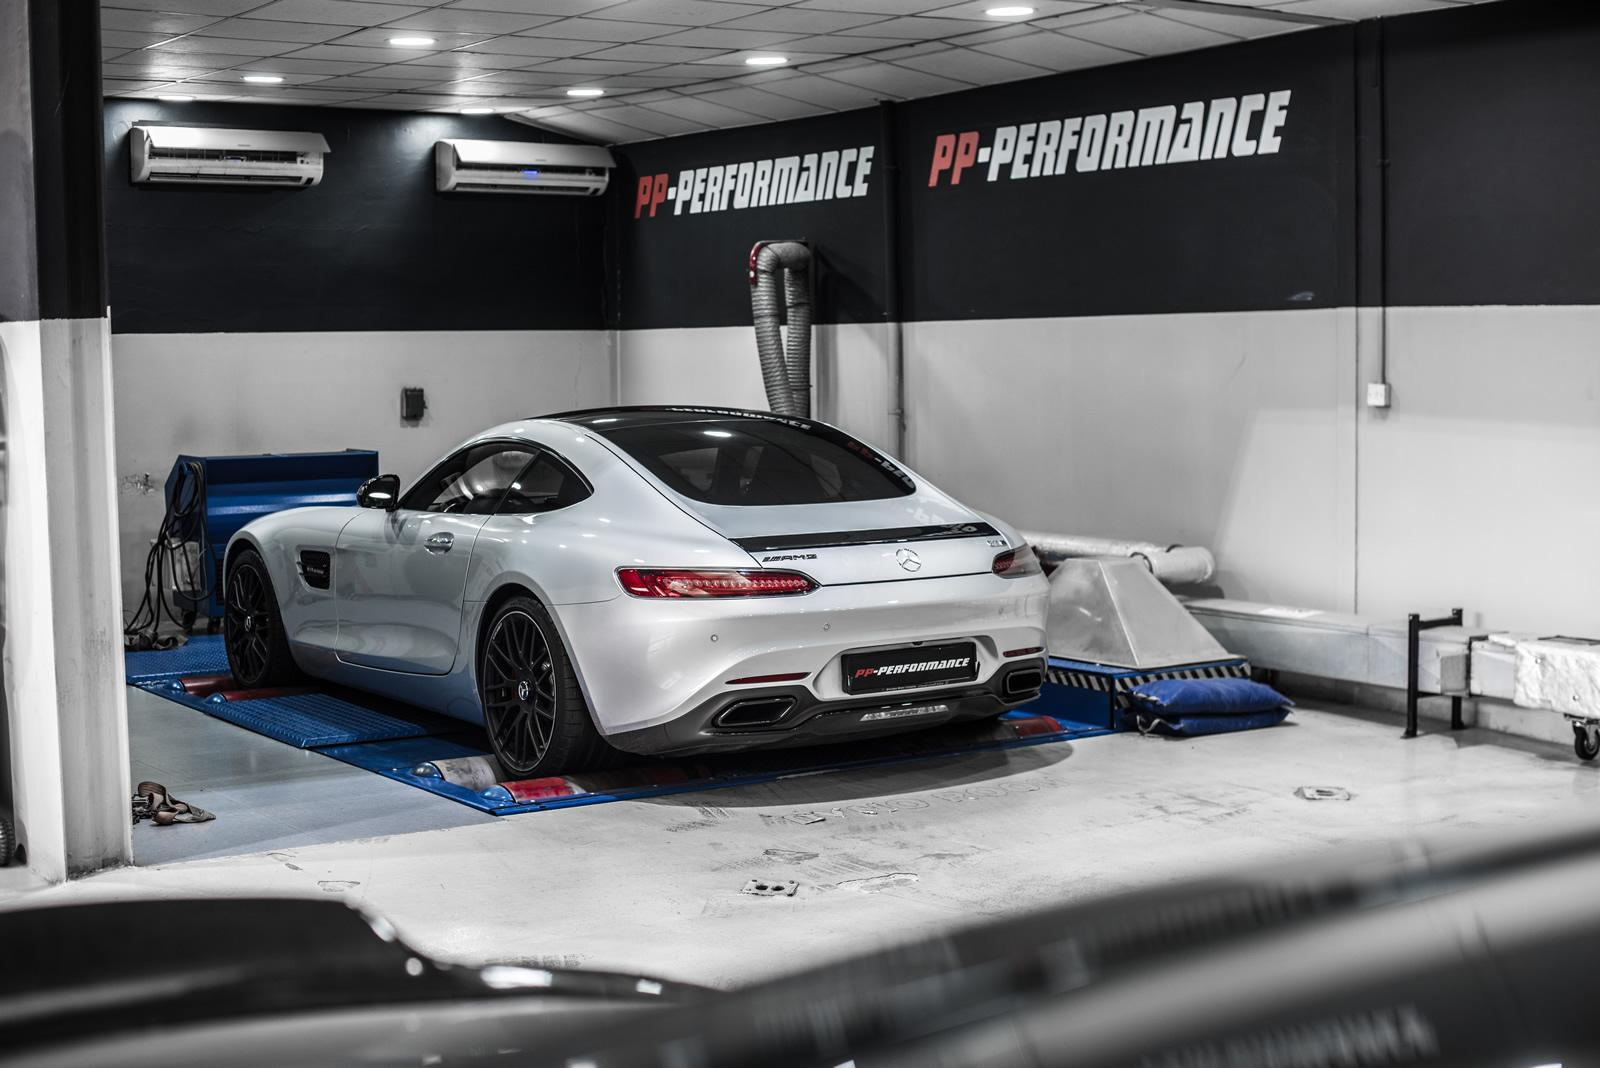 Mercedes-AMG GT and C63 Gain 100 HP from PP-Performance - autoevolution